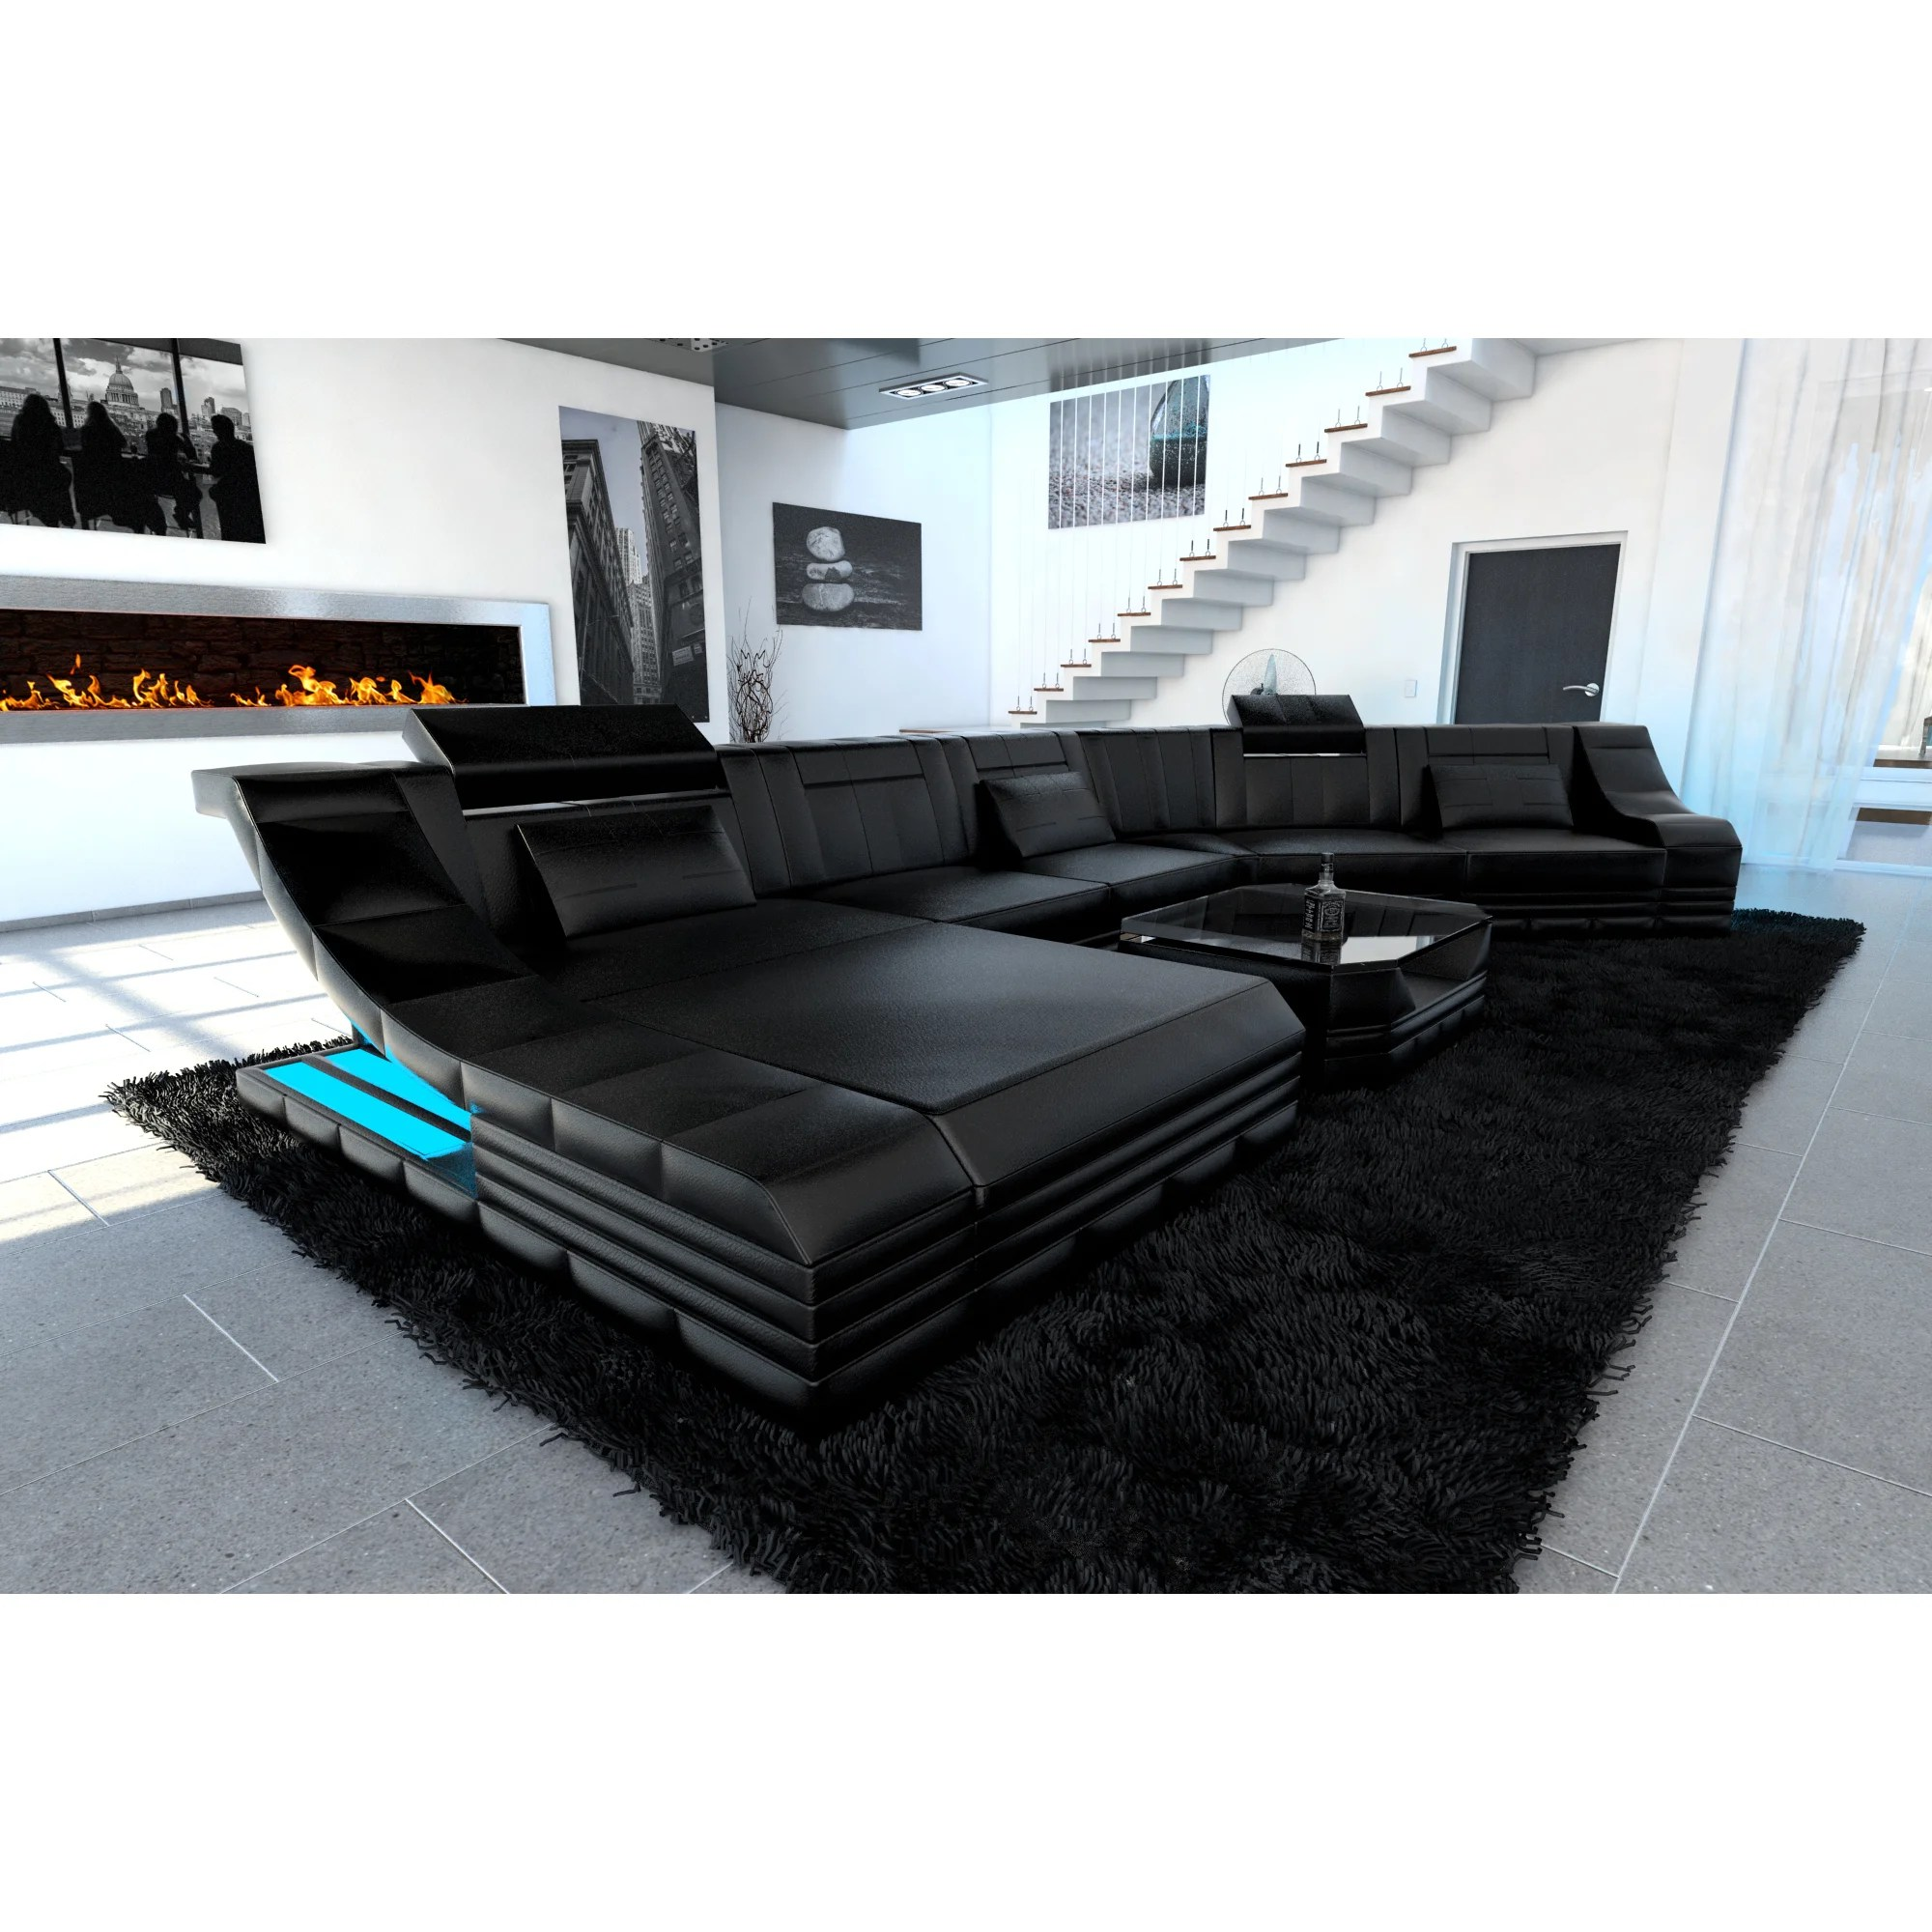 Sofa Led Luxury Sectional Sofa New York Cl Led Lights